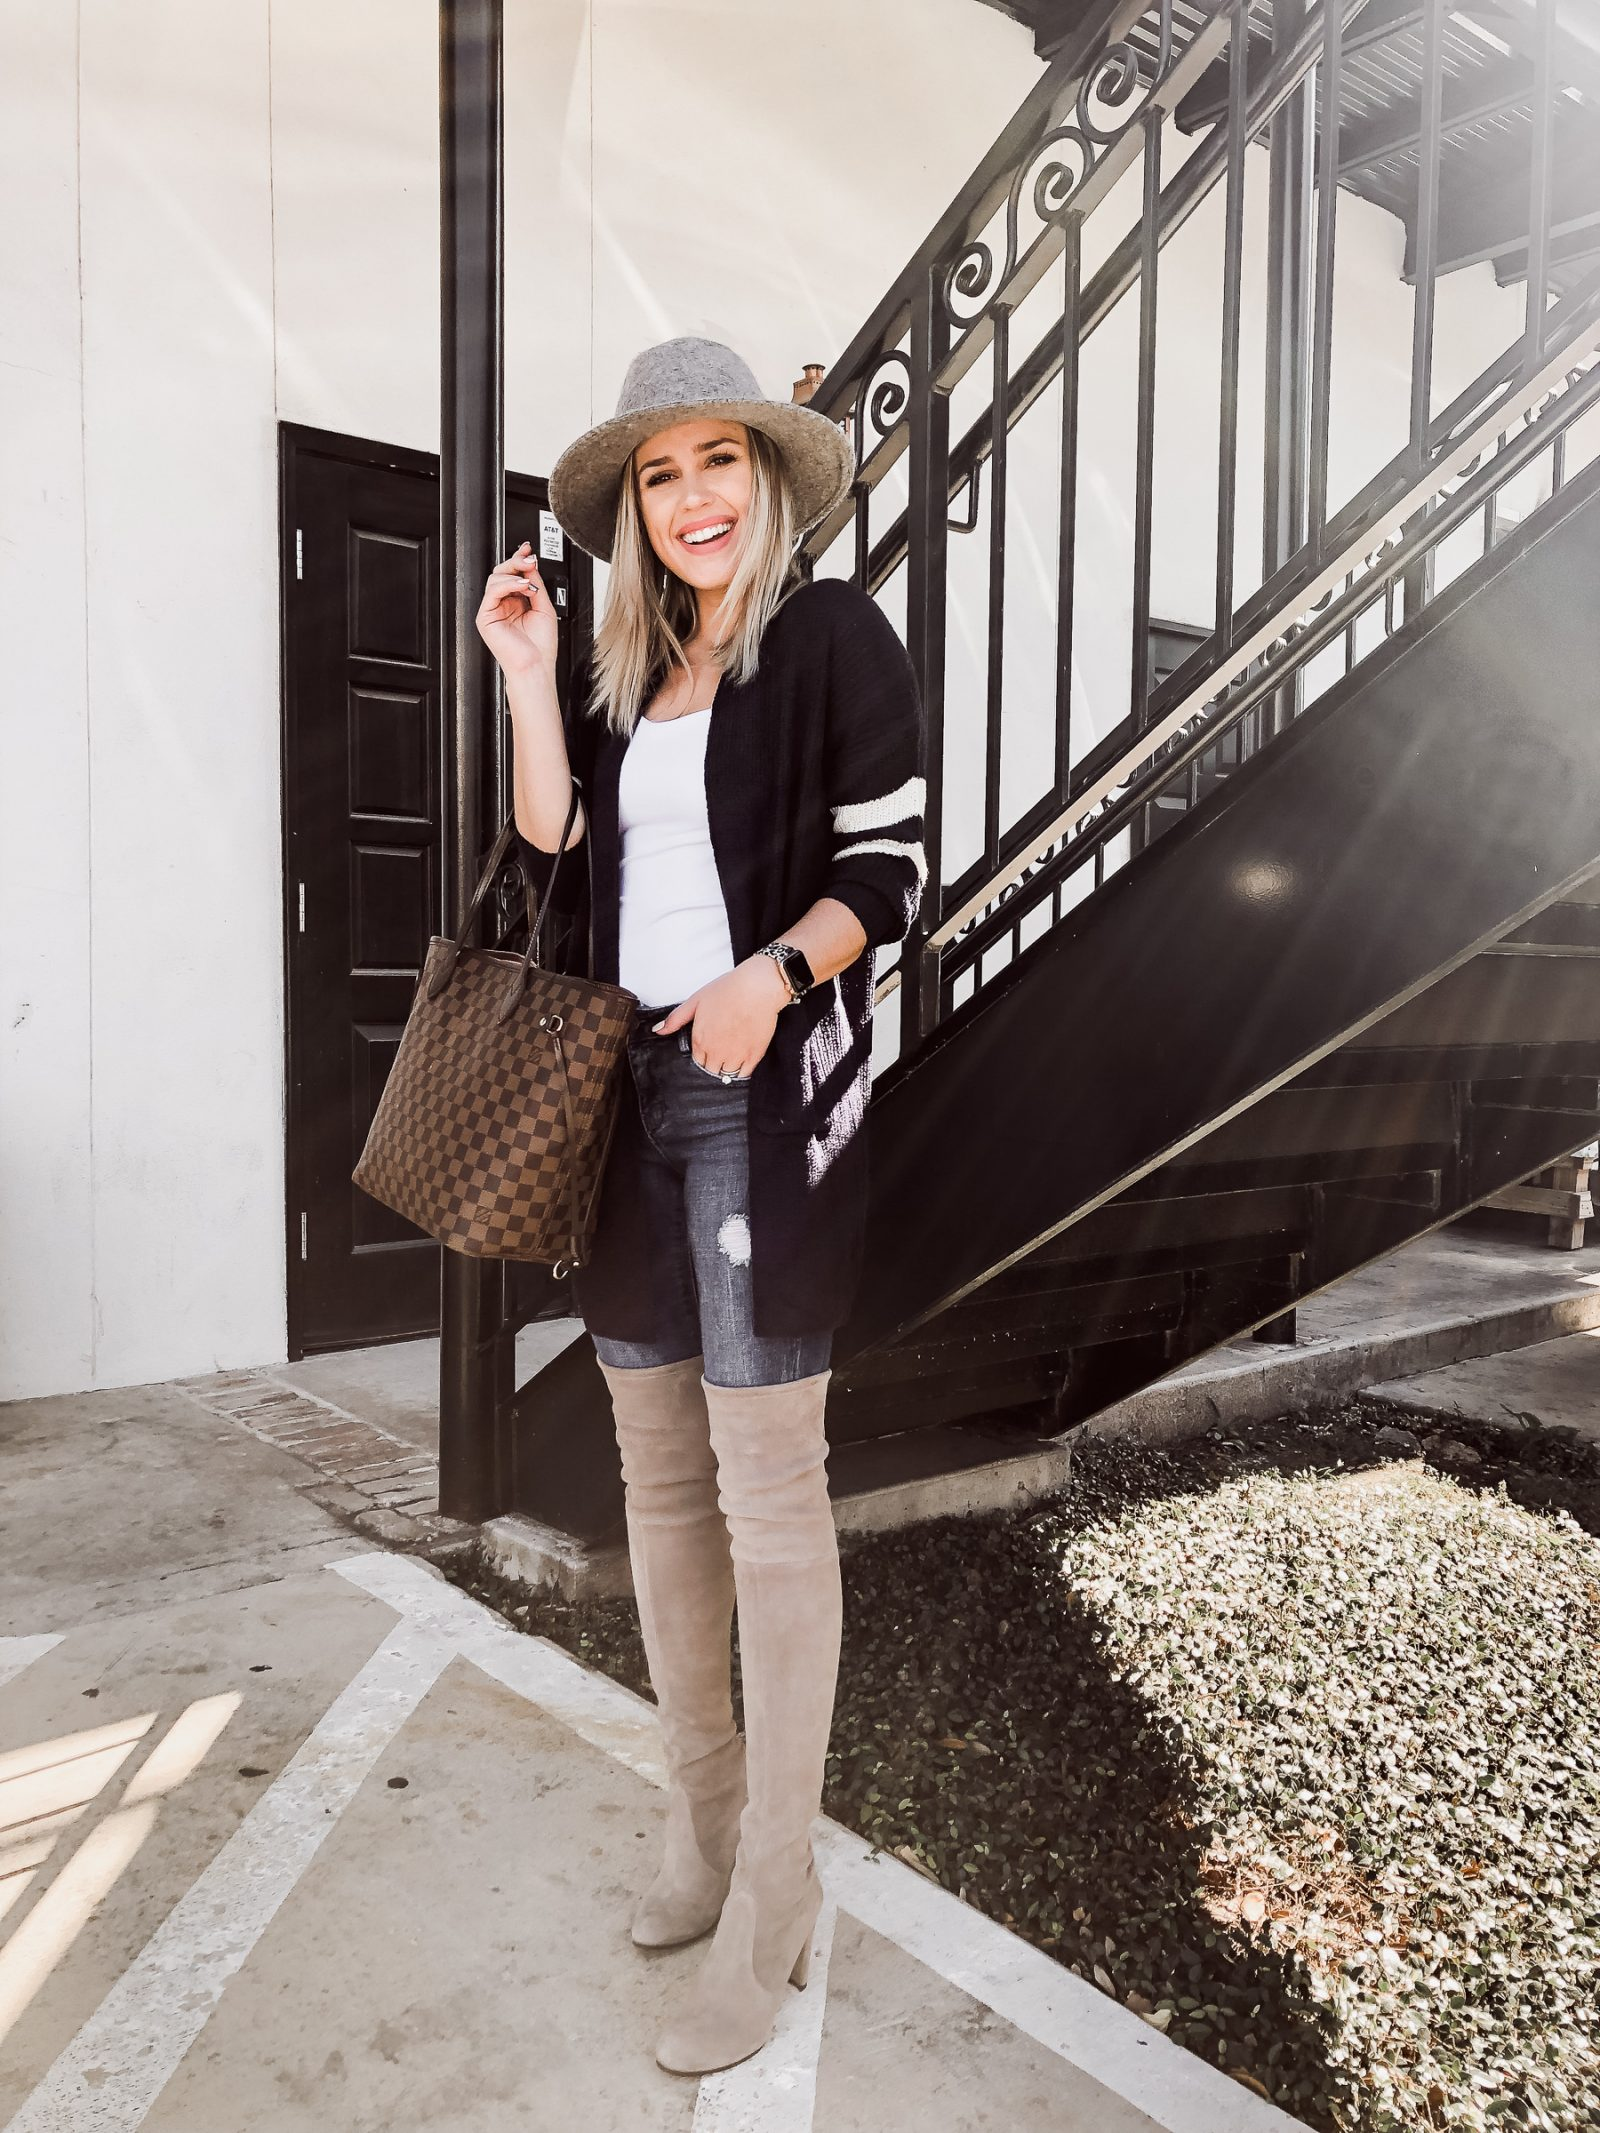 Houston Fashion blogger Uptown with Elly Brown wears over the knew boots with a cardigan